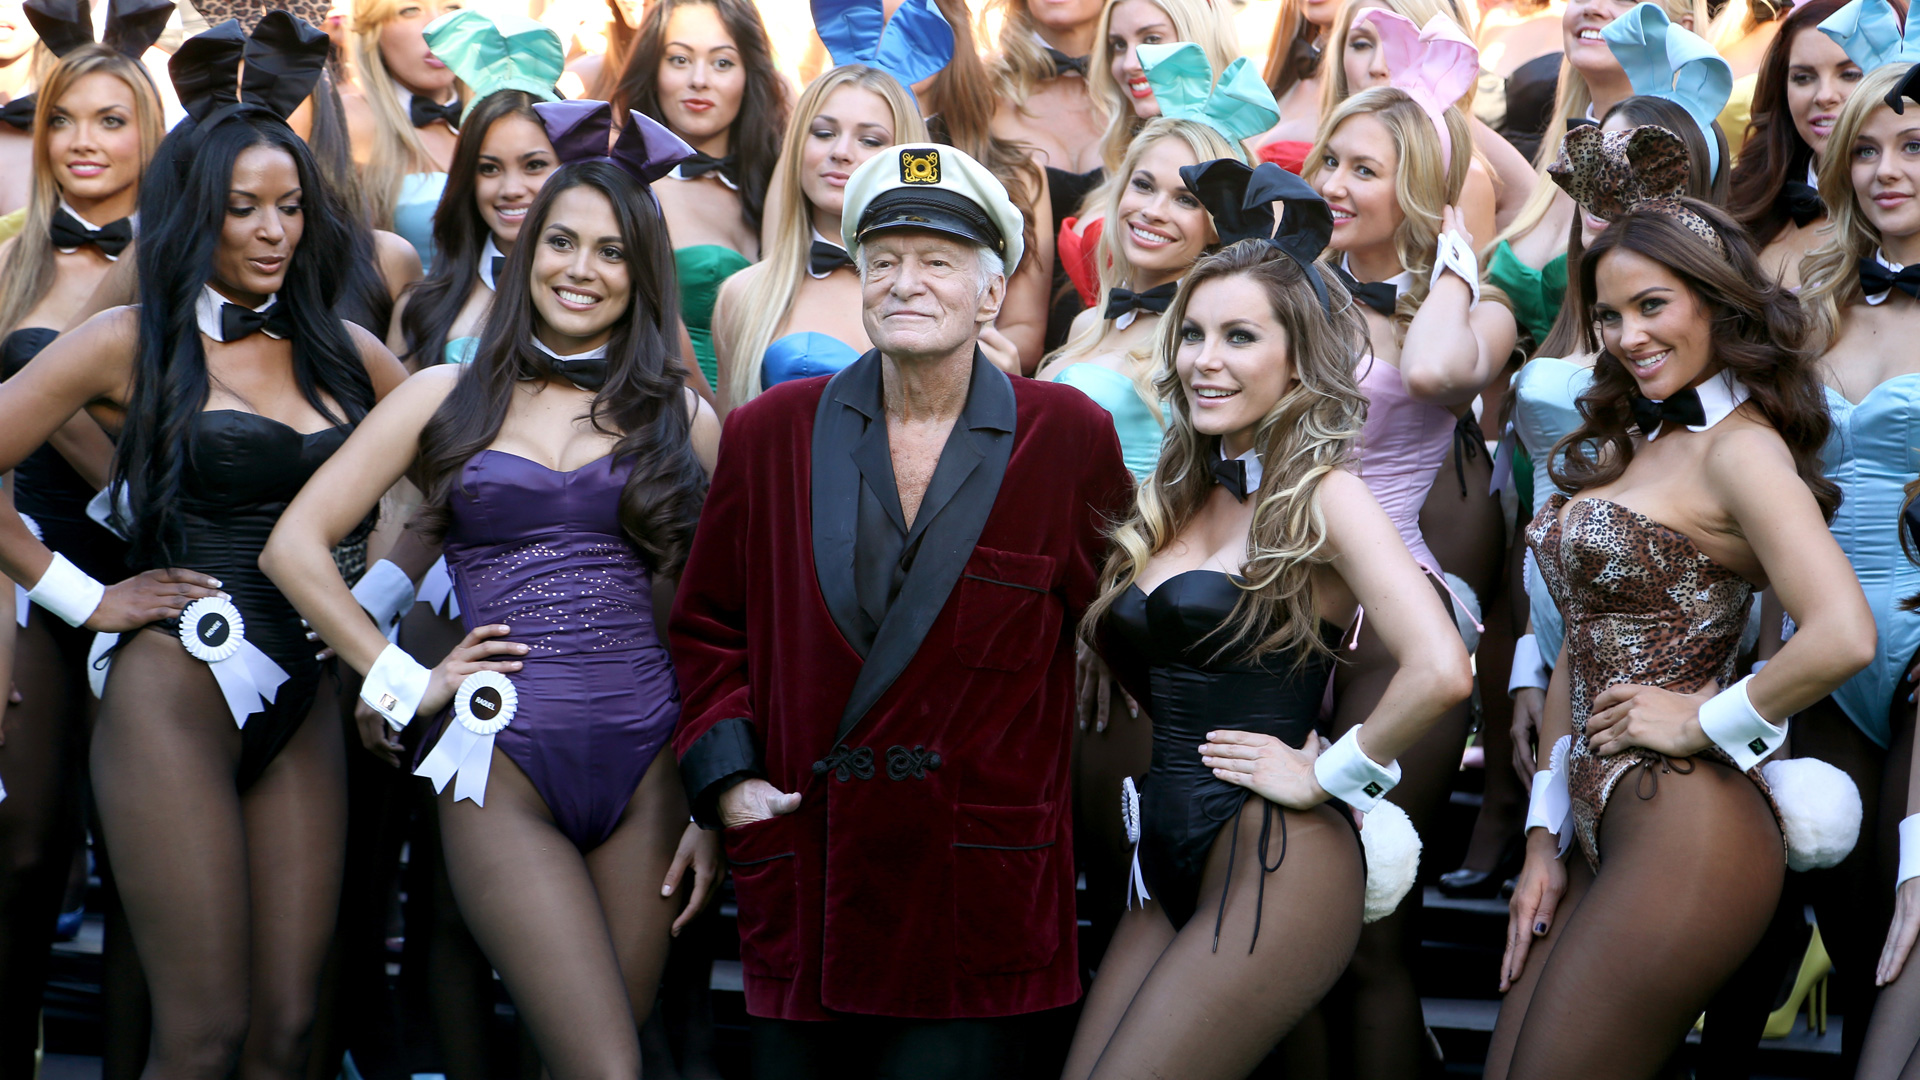 Hef and a bunny playmate